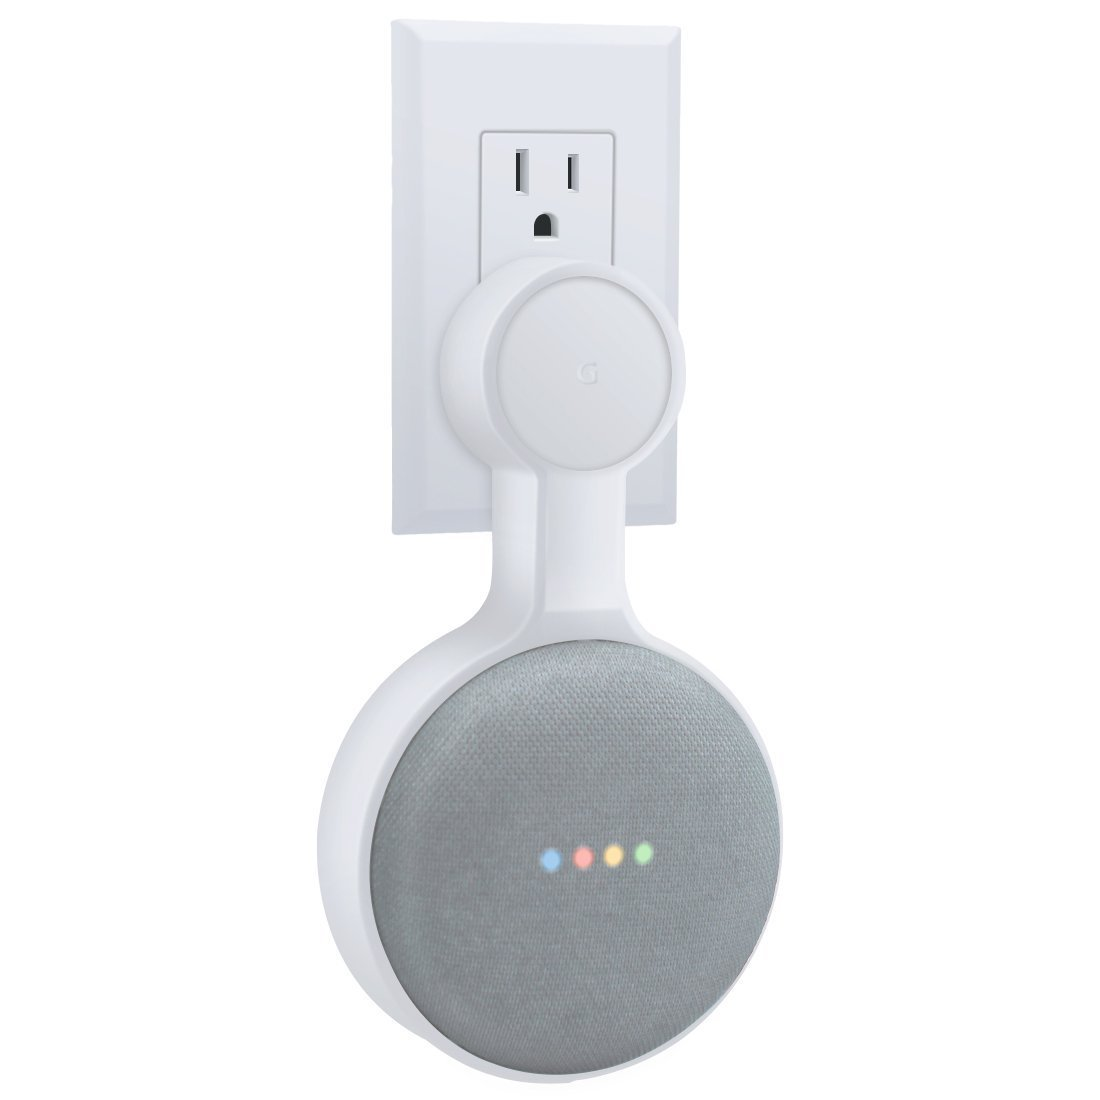 Outlet Wall Mount Hanger Holder Stand for Google Home Mini Built in Cable Cord